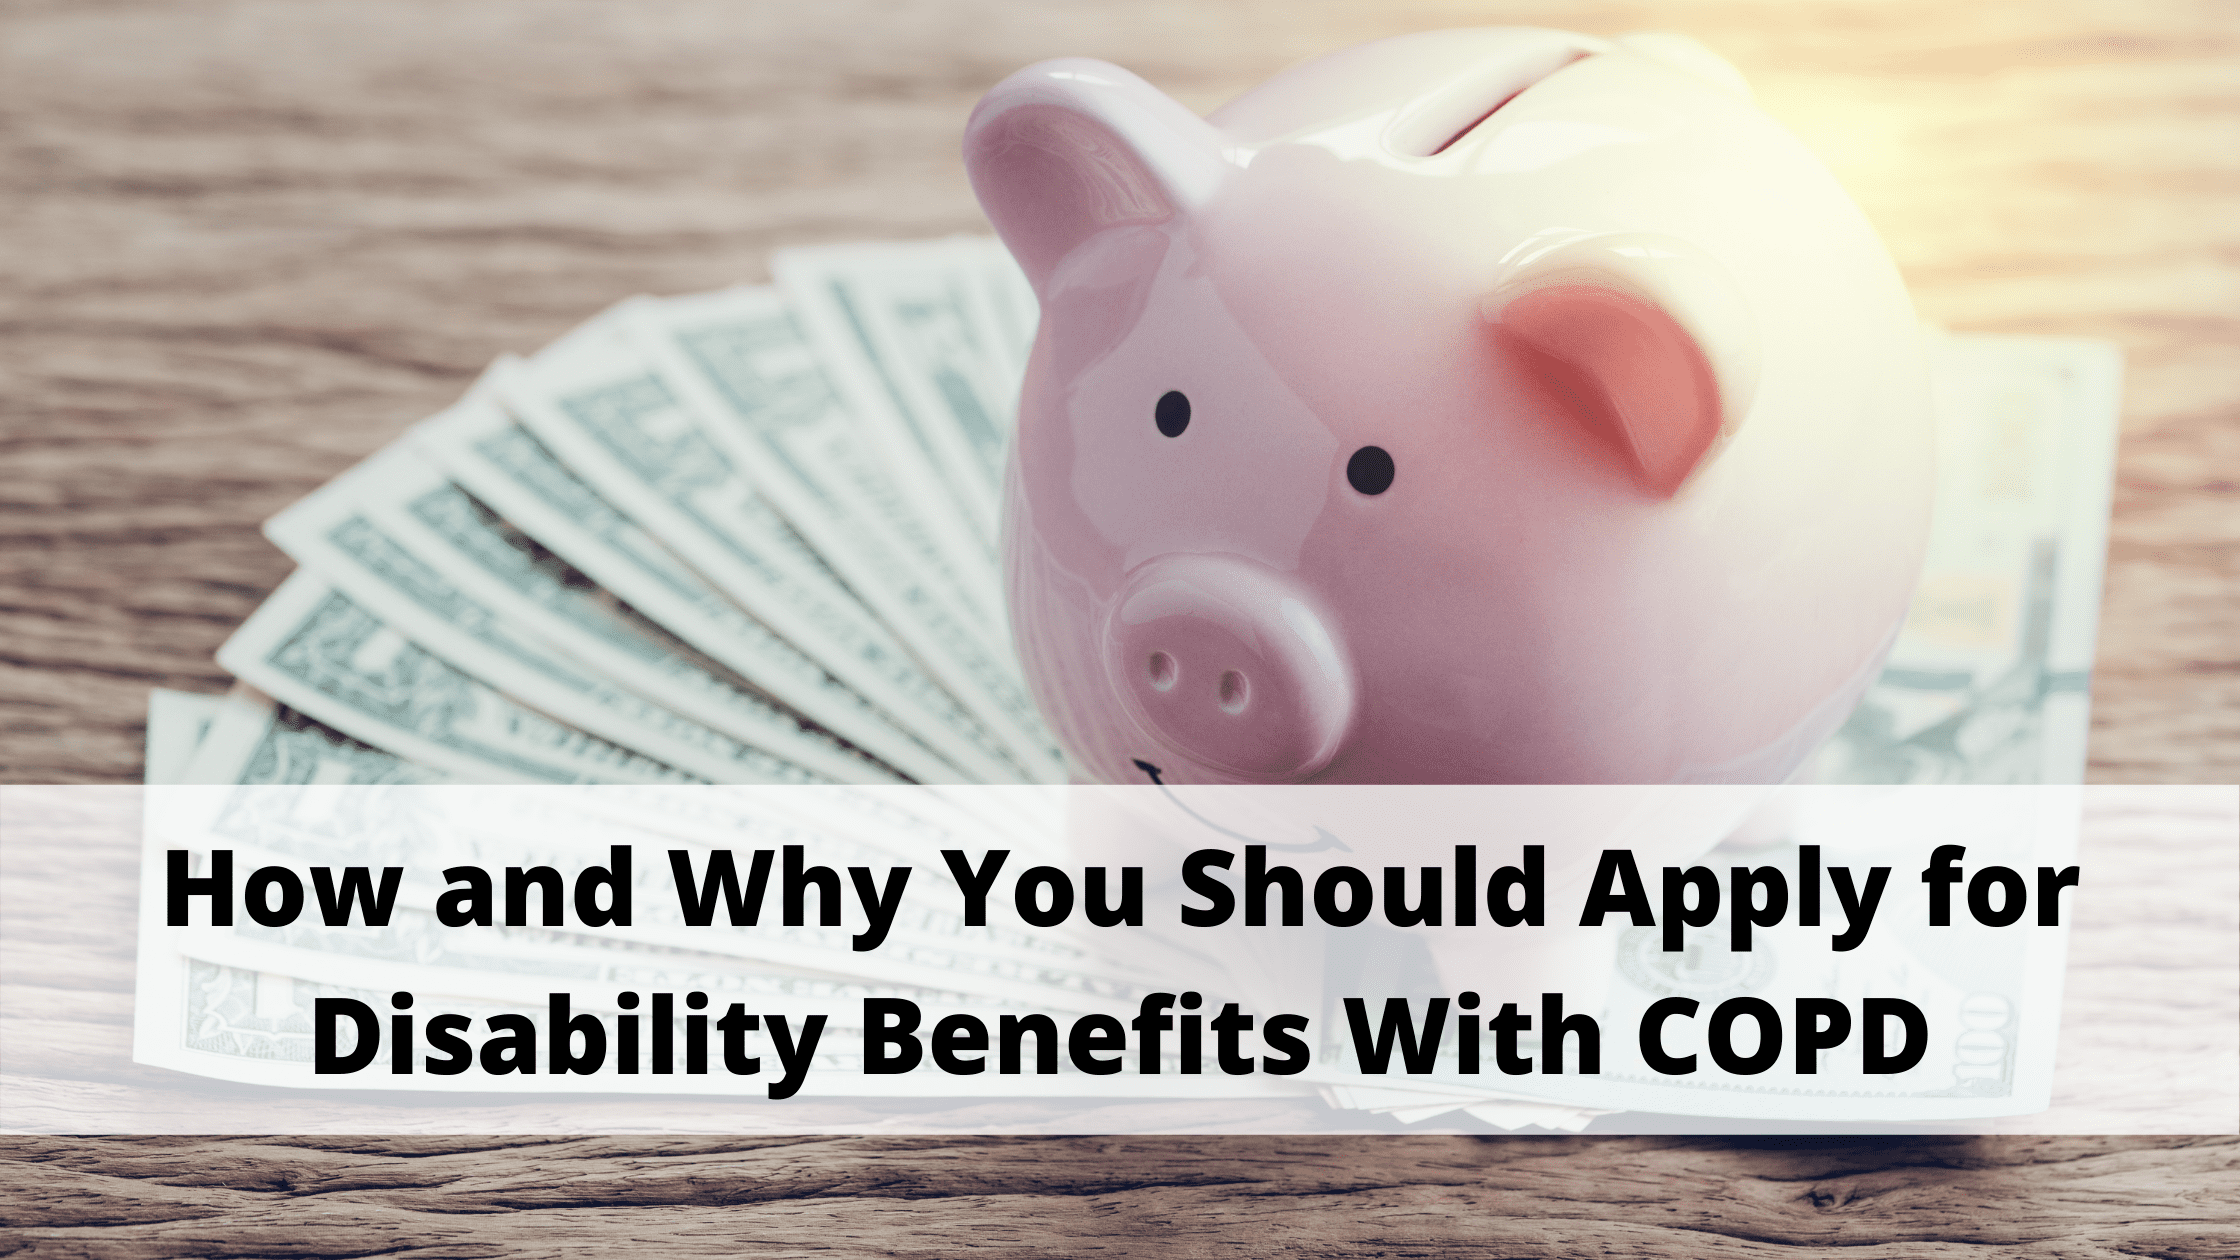 How and Why You Should Apply for Disability Benefits With COPD